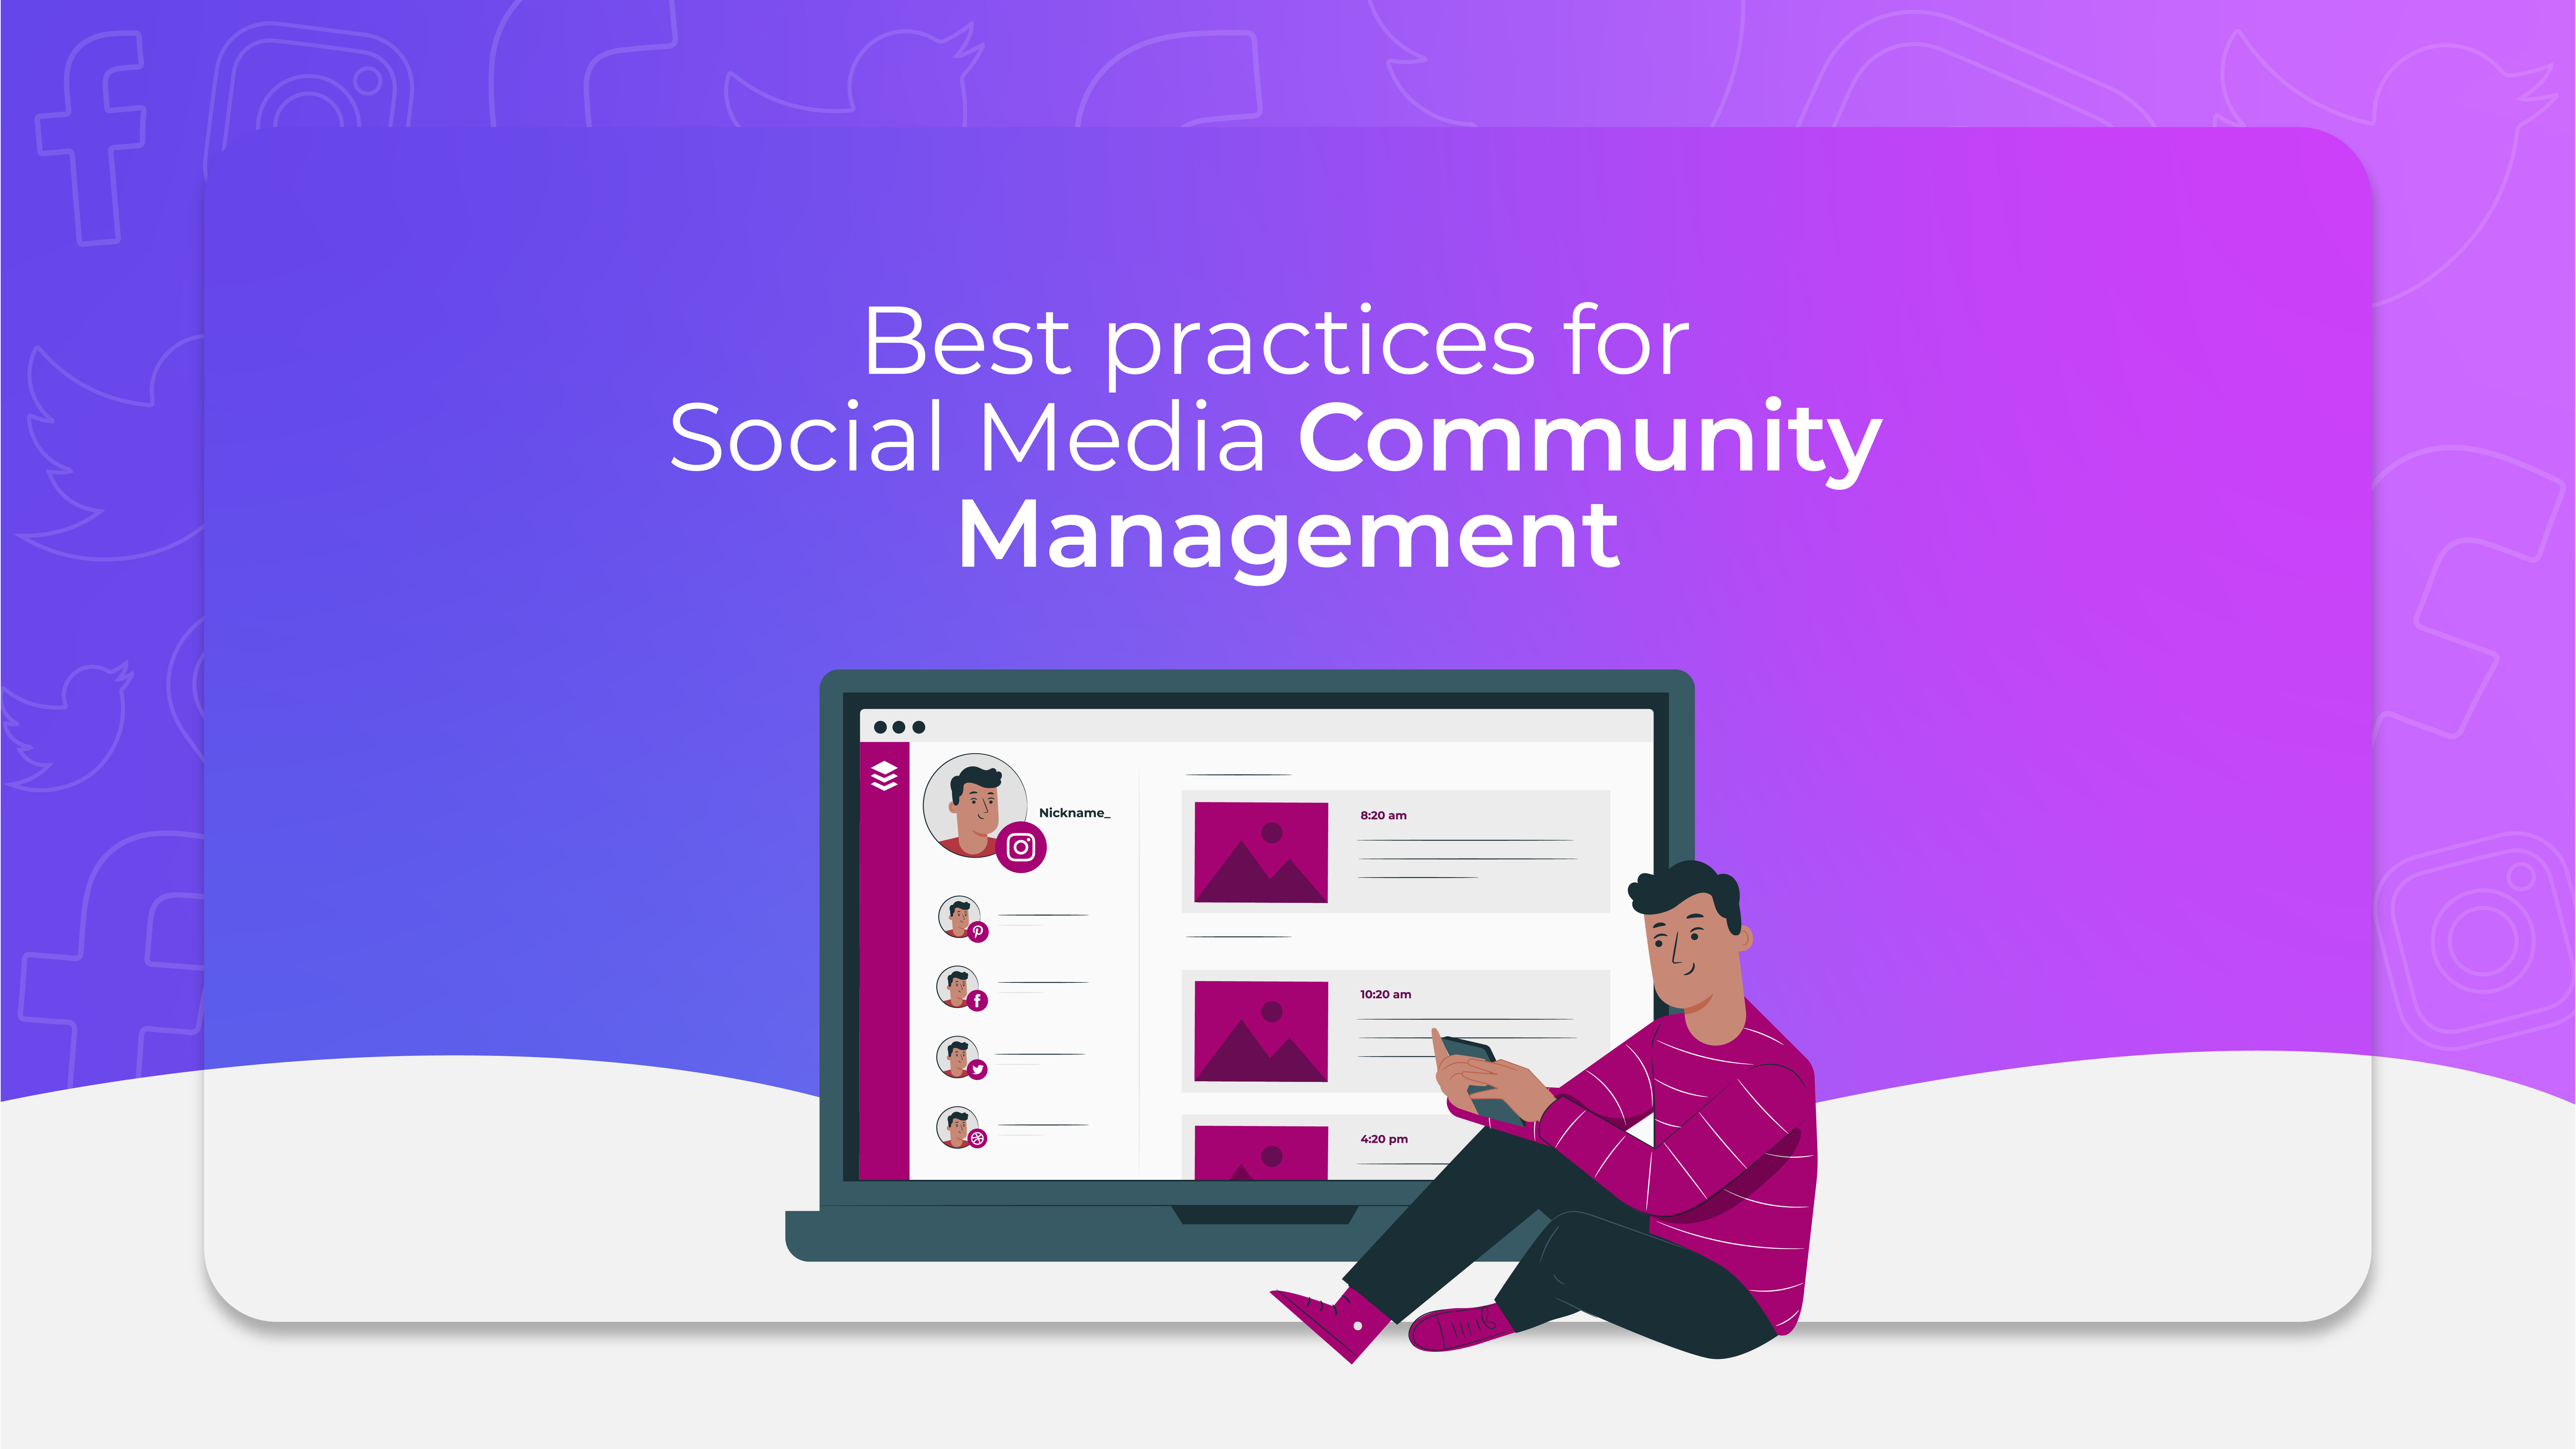 Best practices for Social Media Community Management